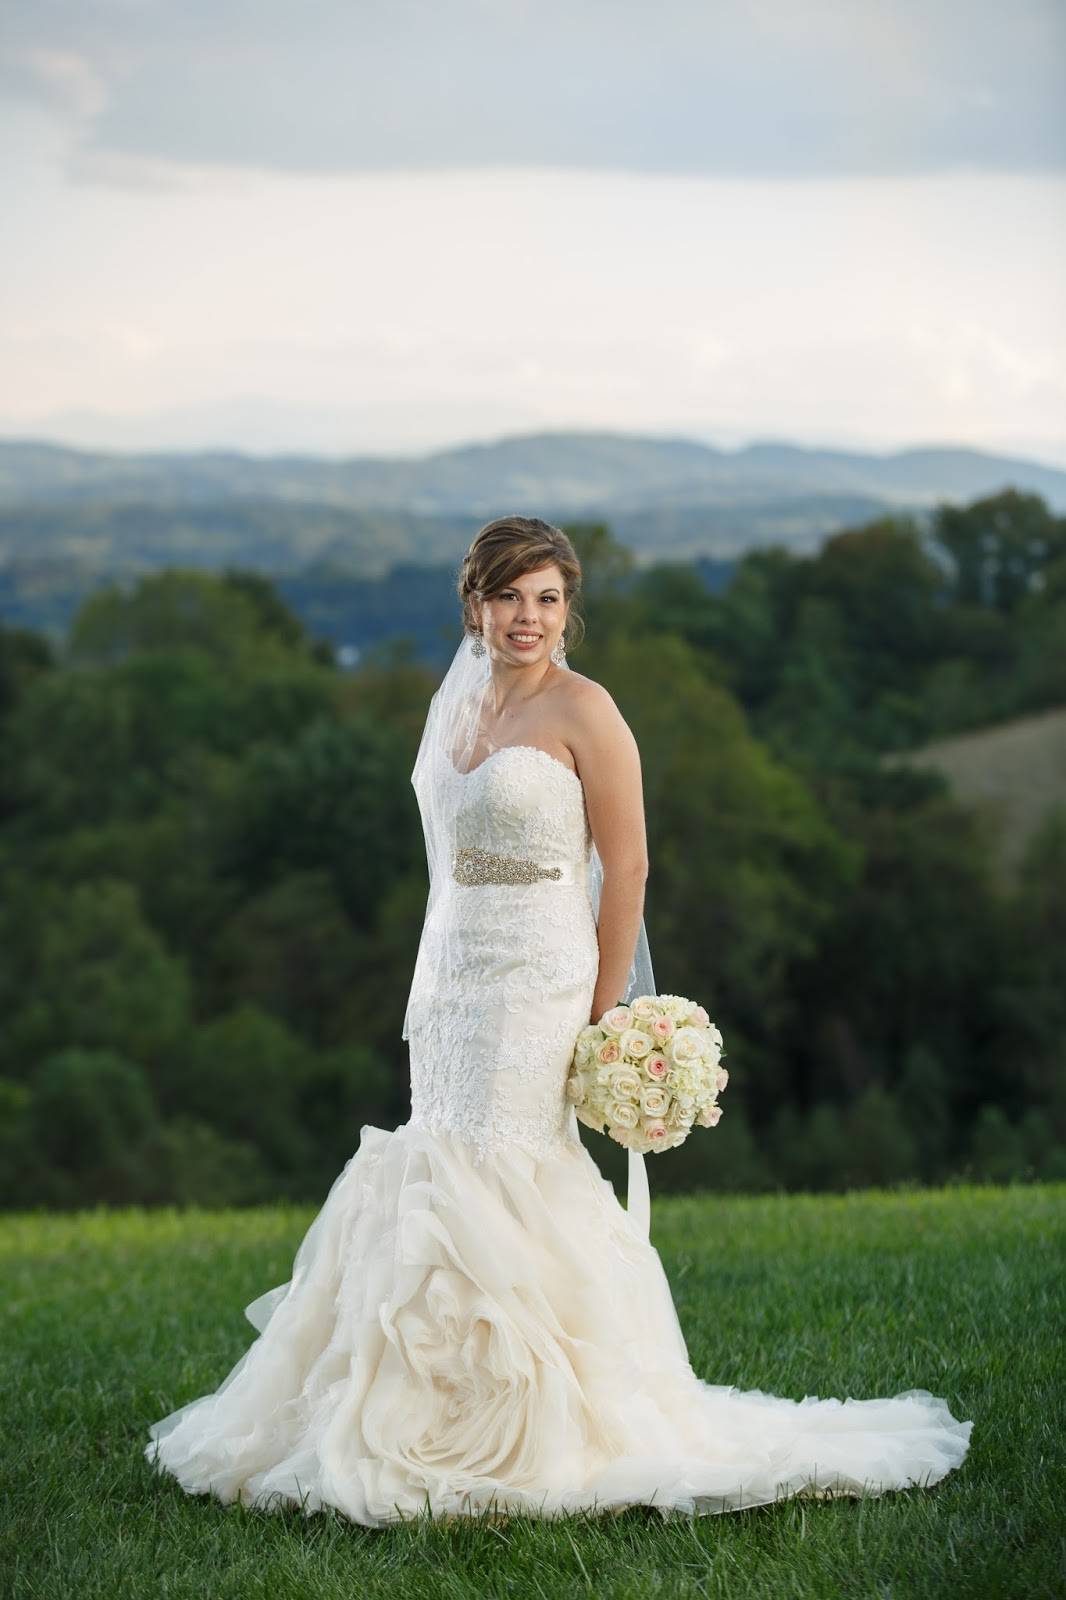 Cable Photography & Video: Megan Grim - Photo Booth - Wedding ...